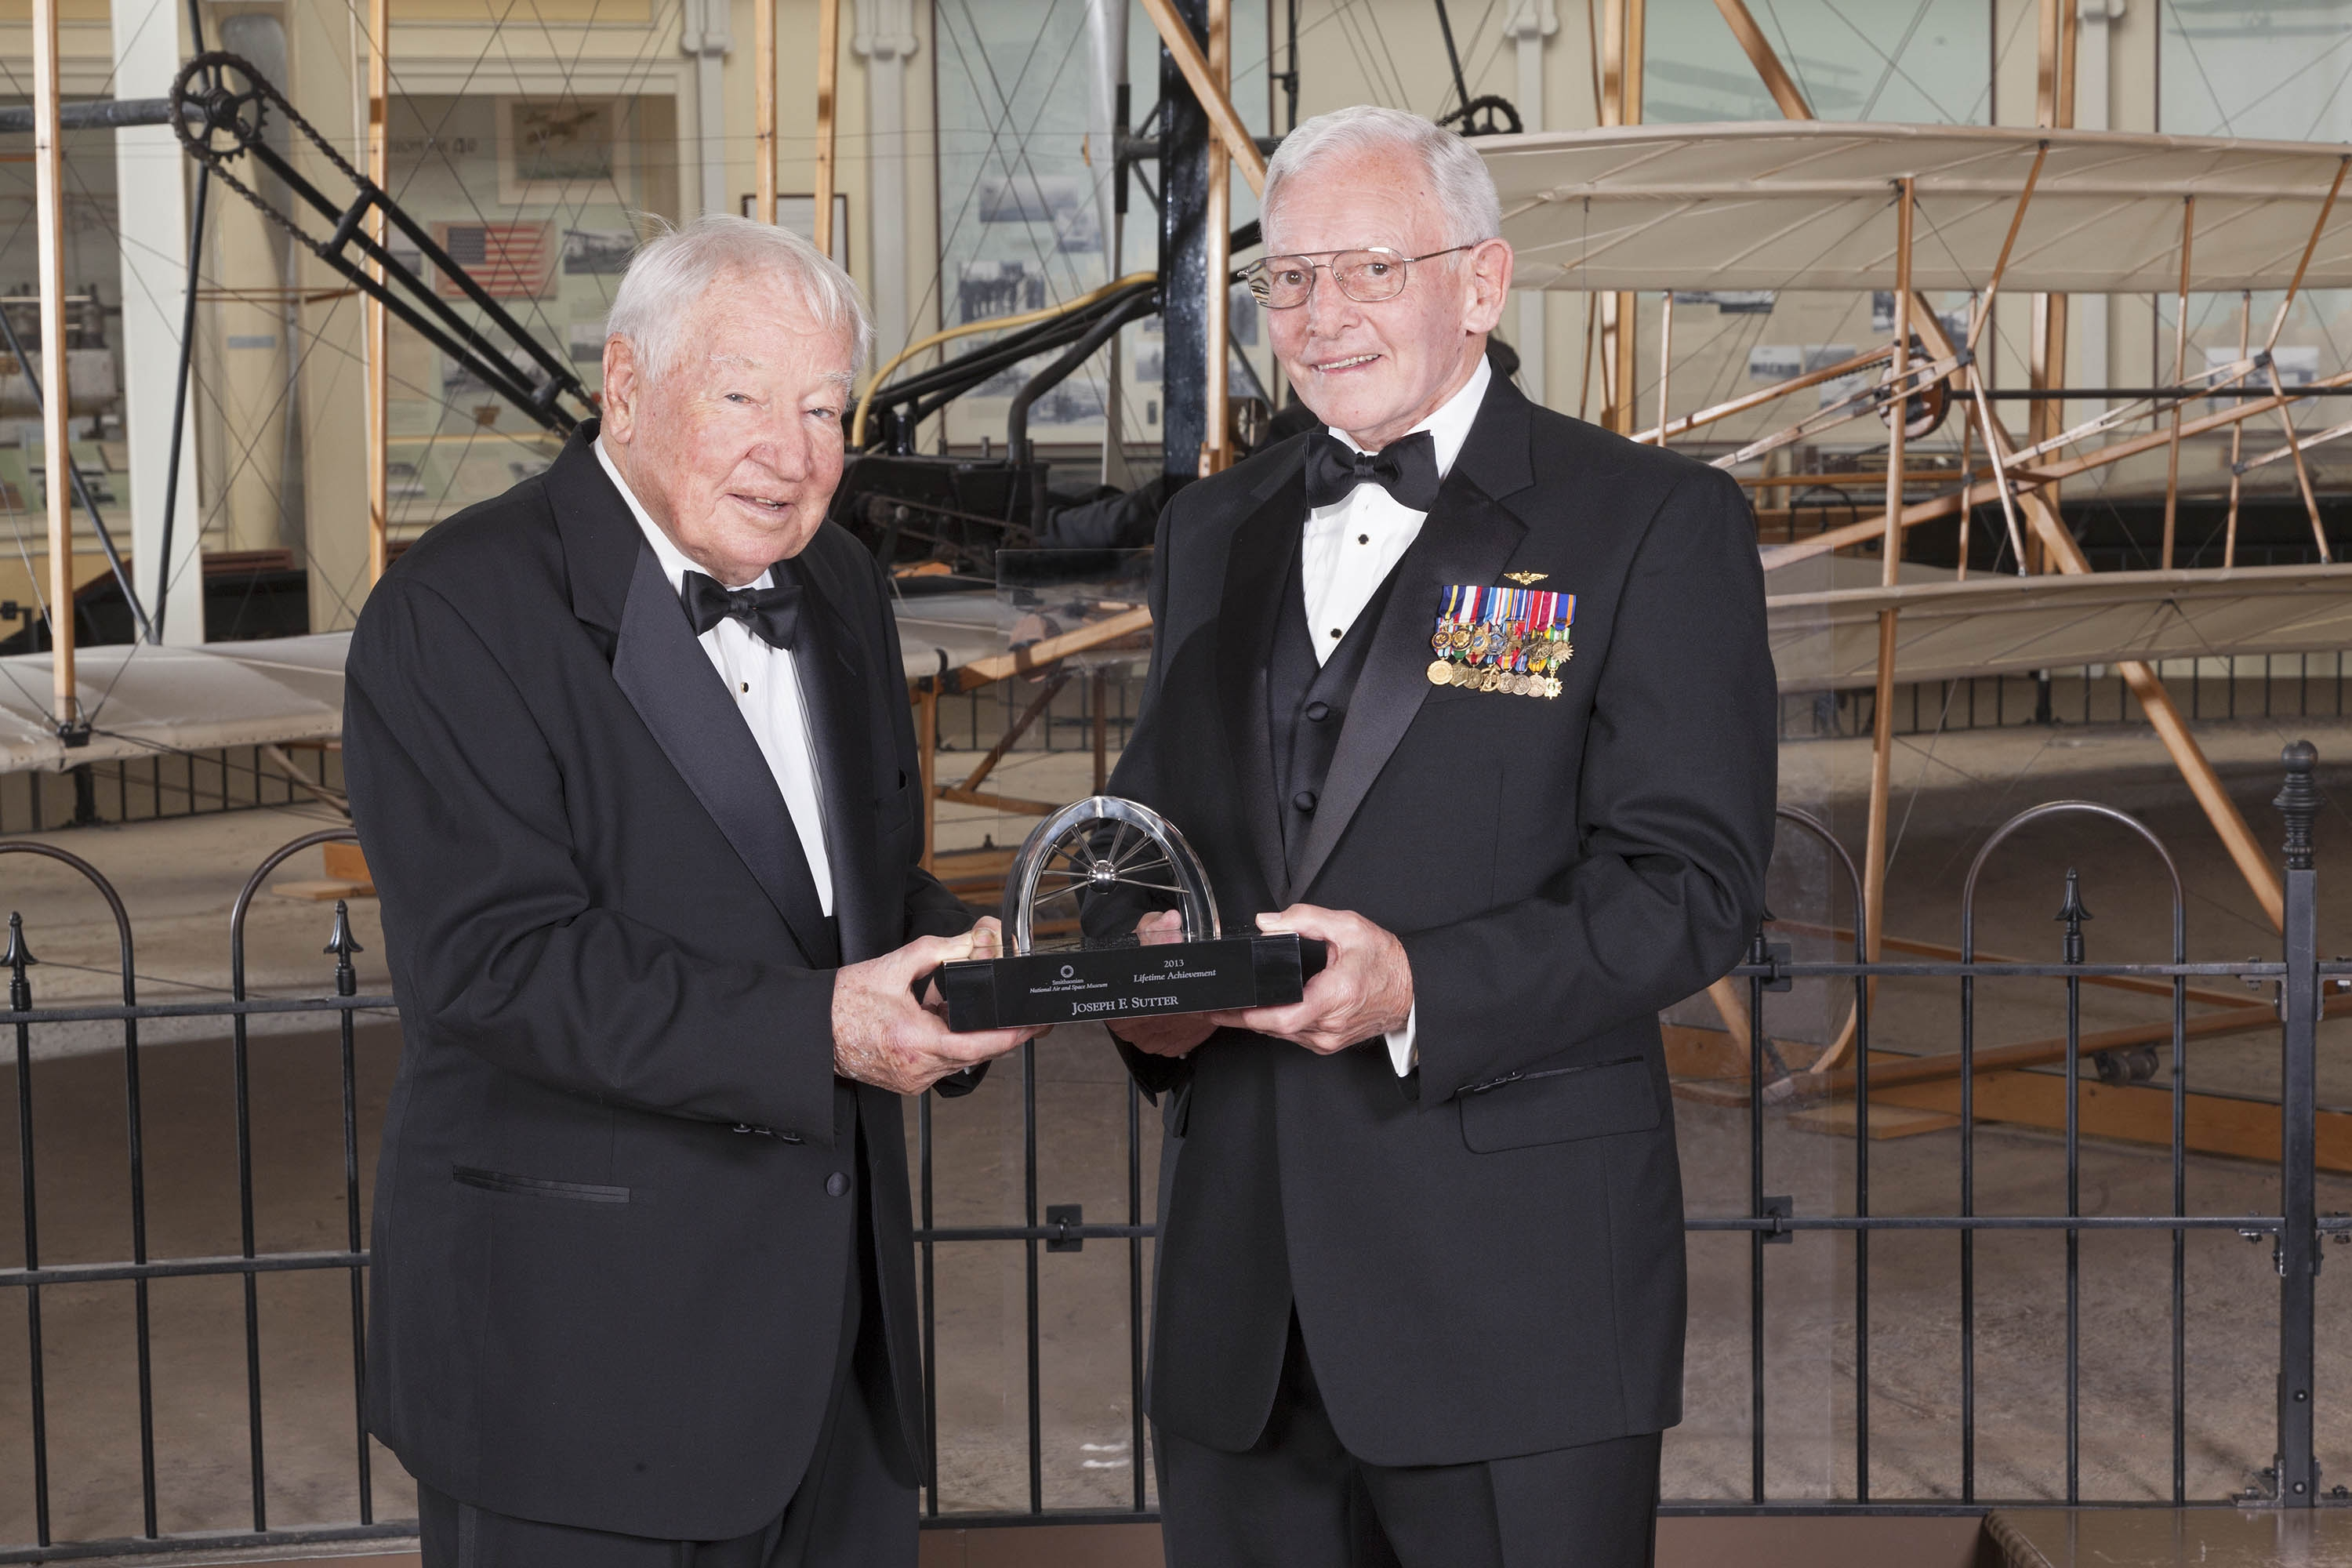 Joseph Sutter and General Jack Dailey